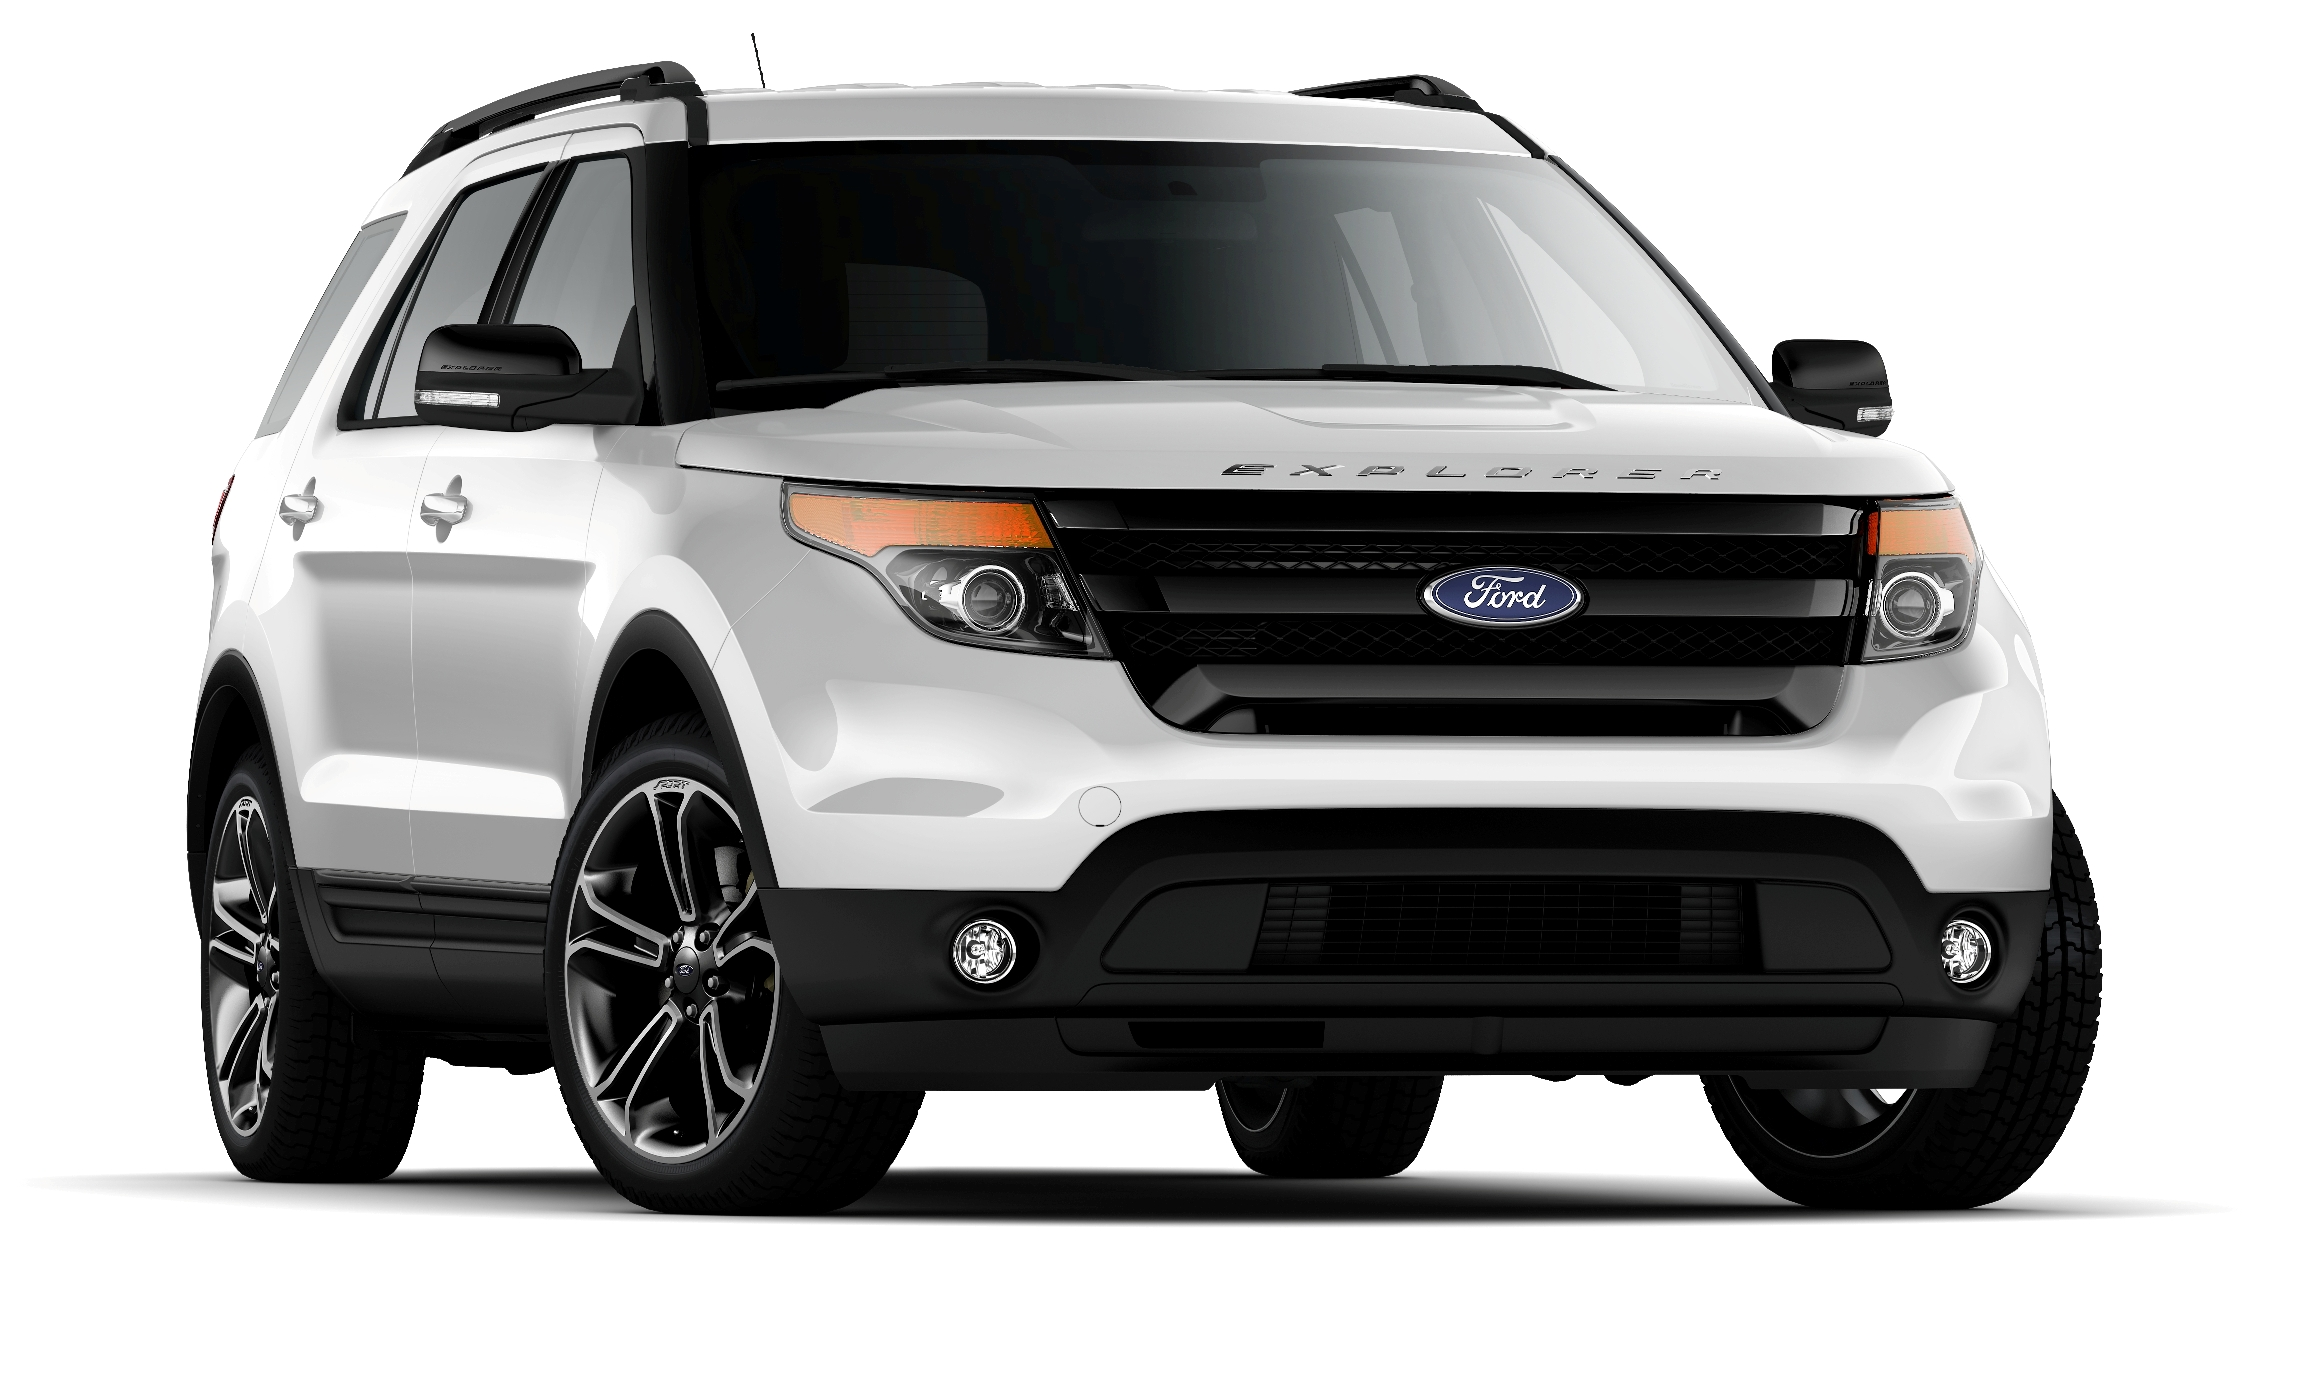 colors furthermore 2015 kia sorento awd moreover 2015 ford explorer